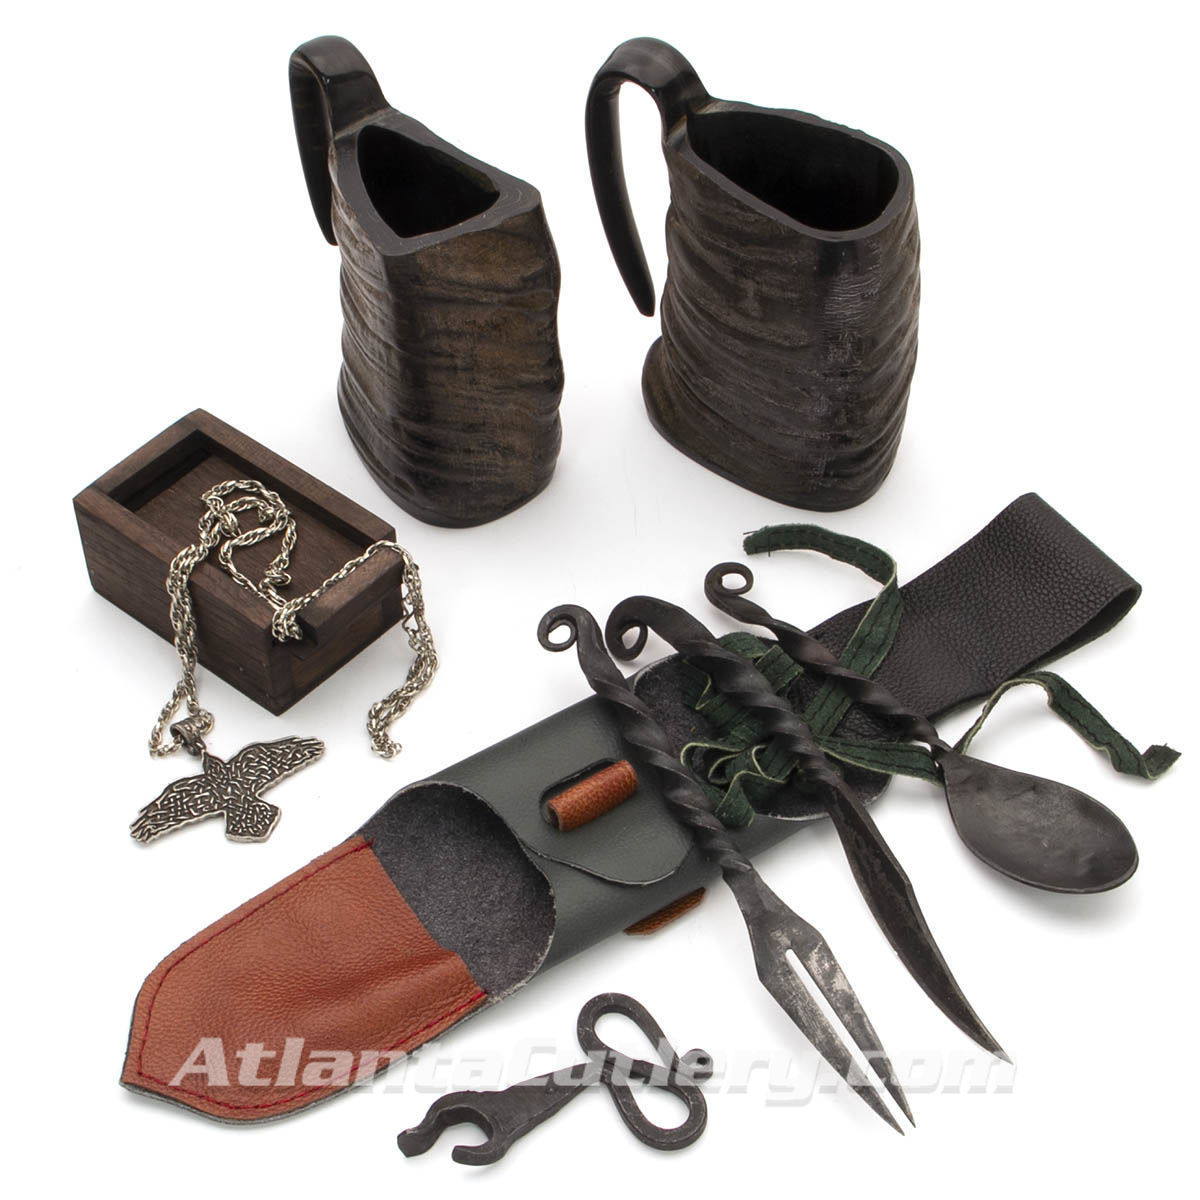 Viking Celebration Kit with 2 Horn Mugs, Feasting Utensils with Leather Belt Pouch, Iron Bottle Opener and Pewter Raven Pendant